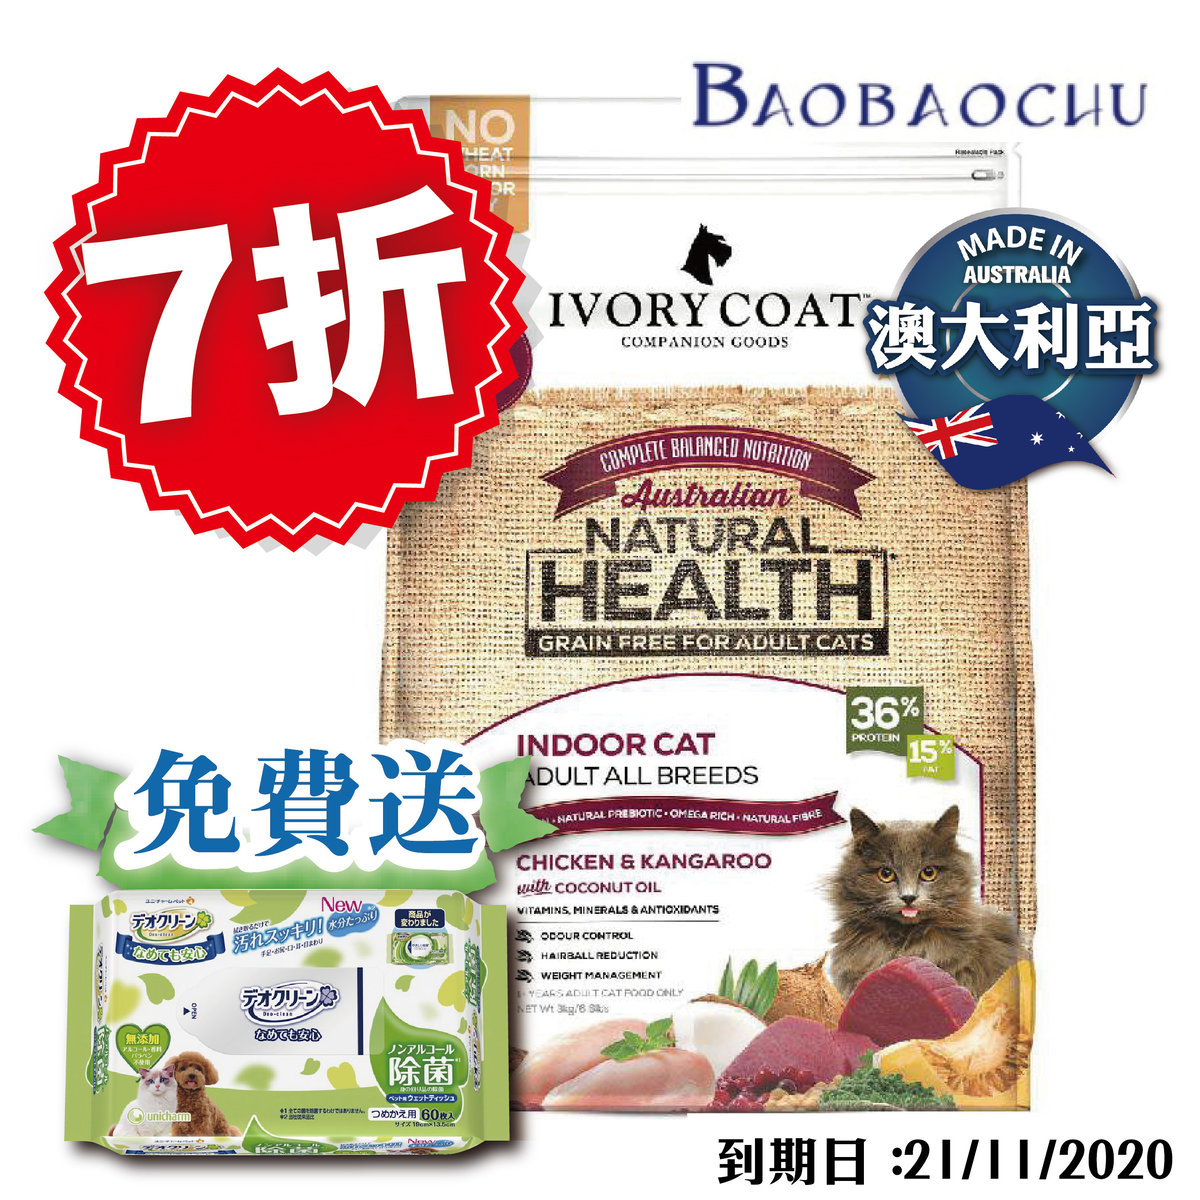 Indoor Cat Kangaroo & Chicken with Coconut Oil 6kg (ICKC-2827)- expiry date: 21-Nov-2020